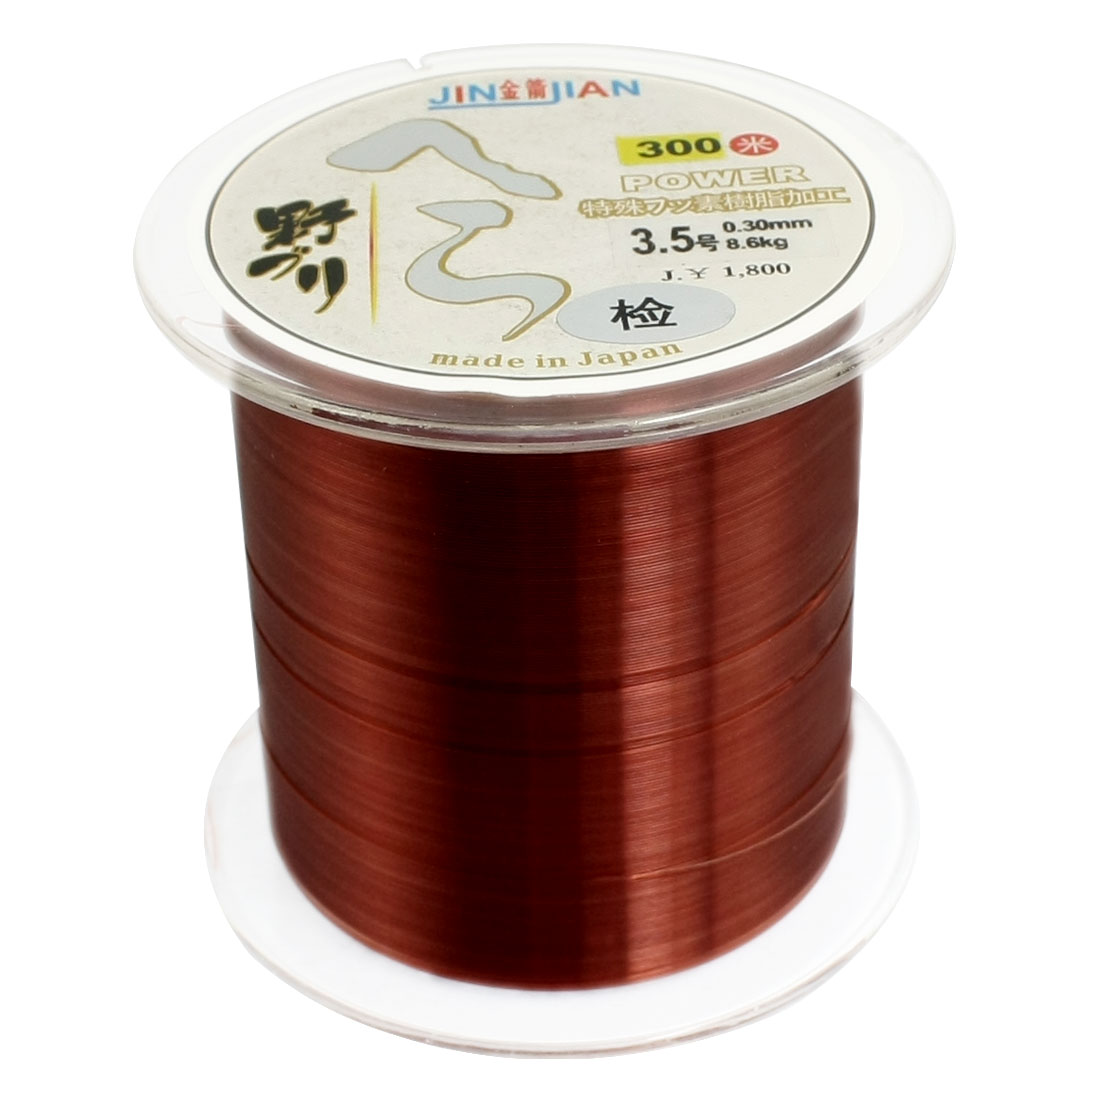 0.3mm Diameter 8.6Kg Brown Nylon Freshwater Fishing Spool Line 300m